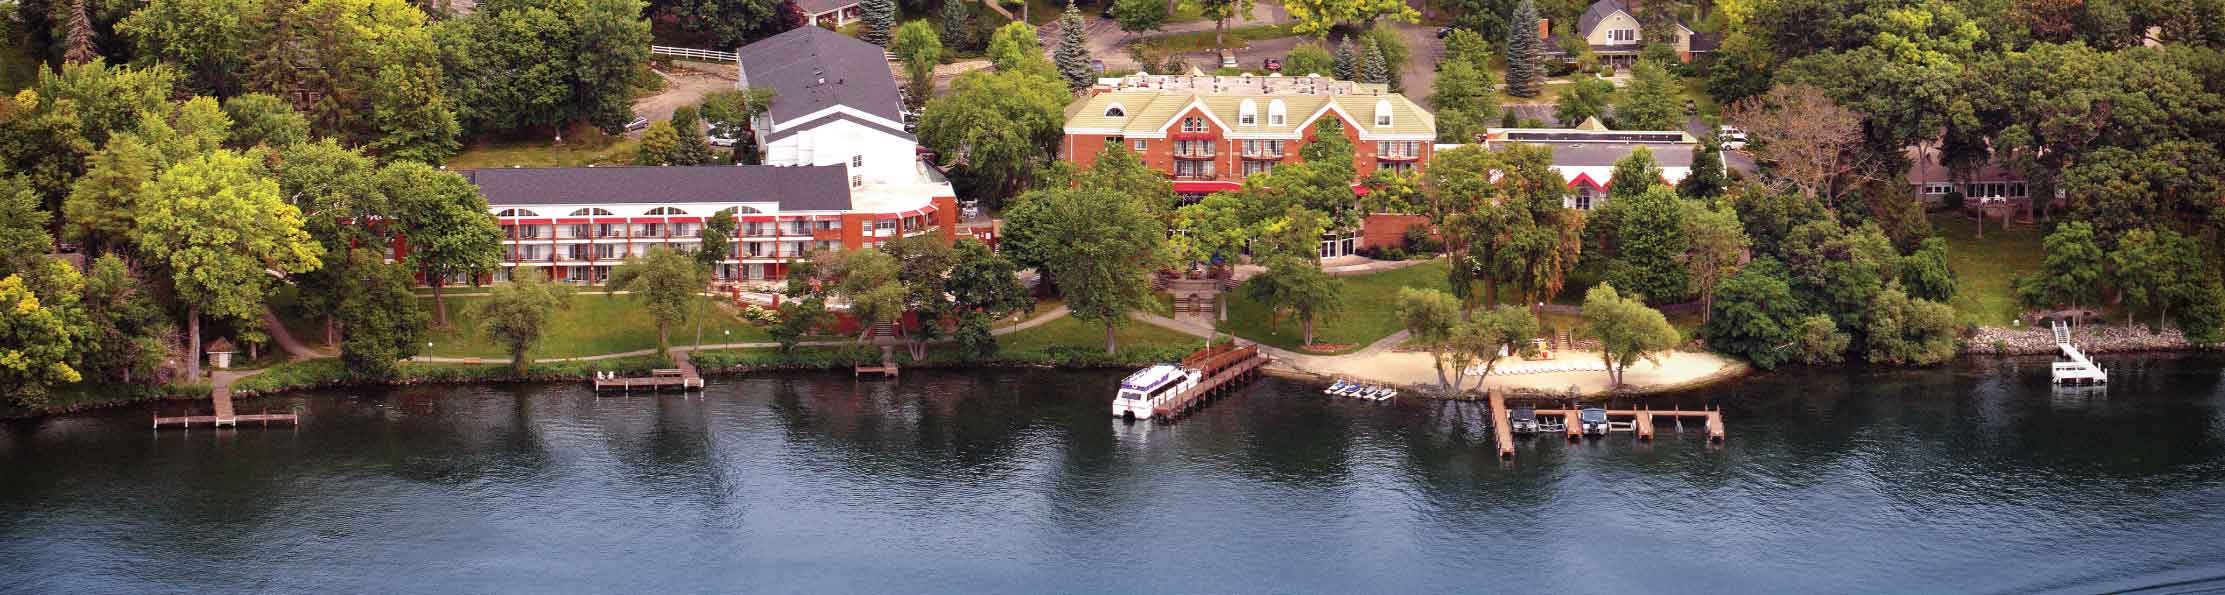 green lake wi, heidel house resort & spa